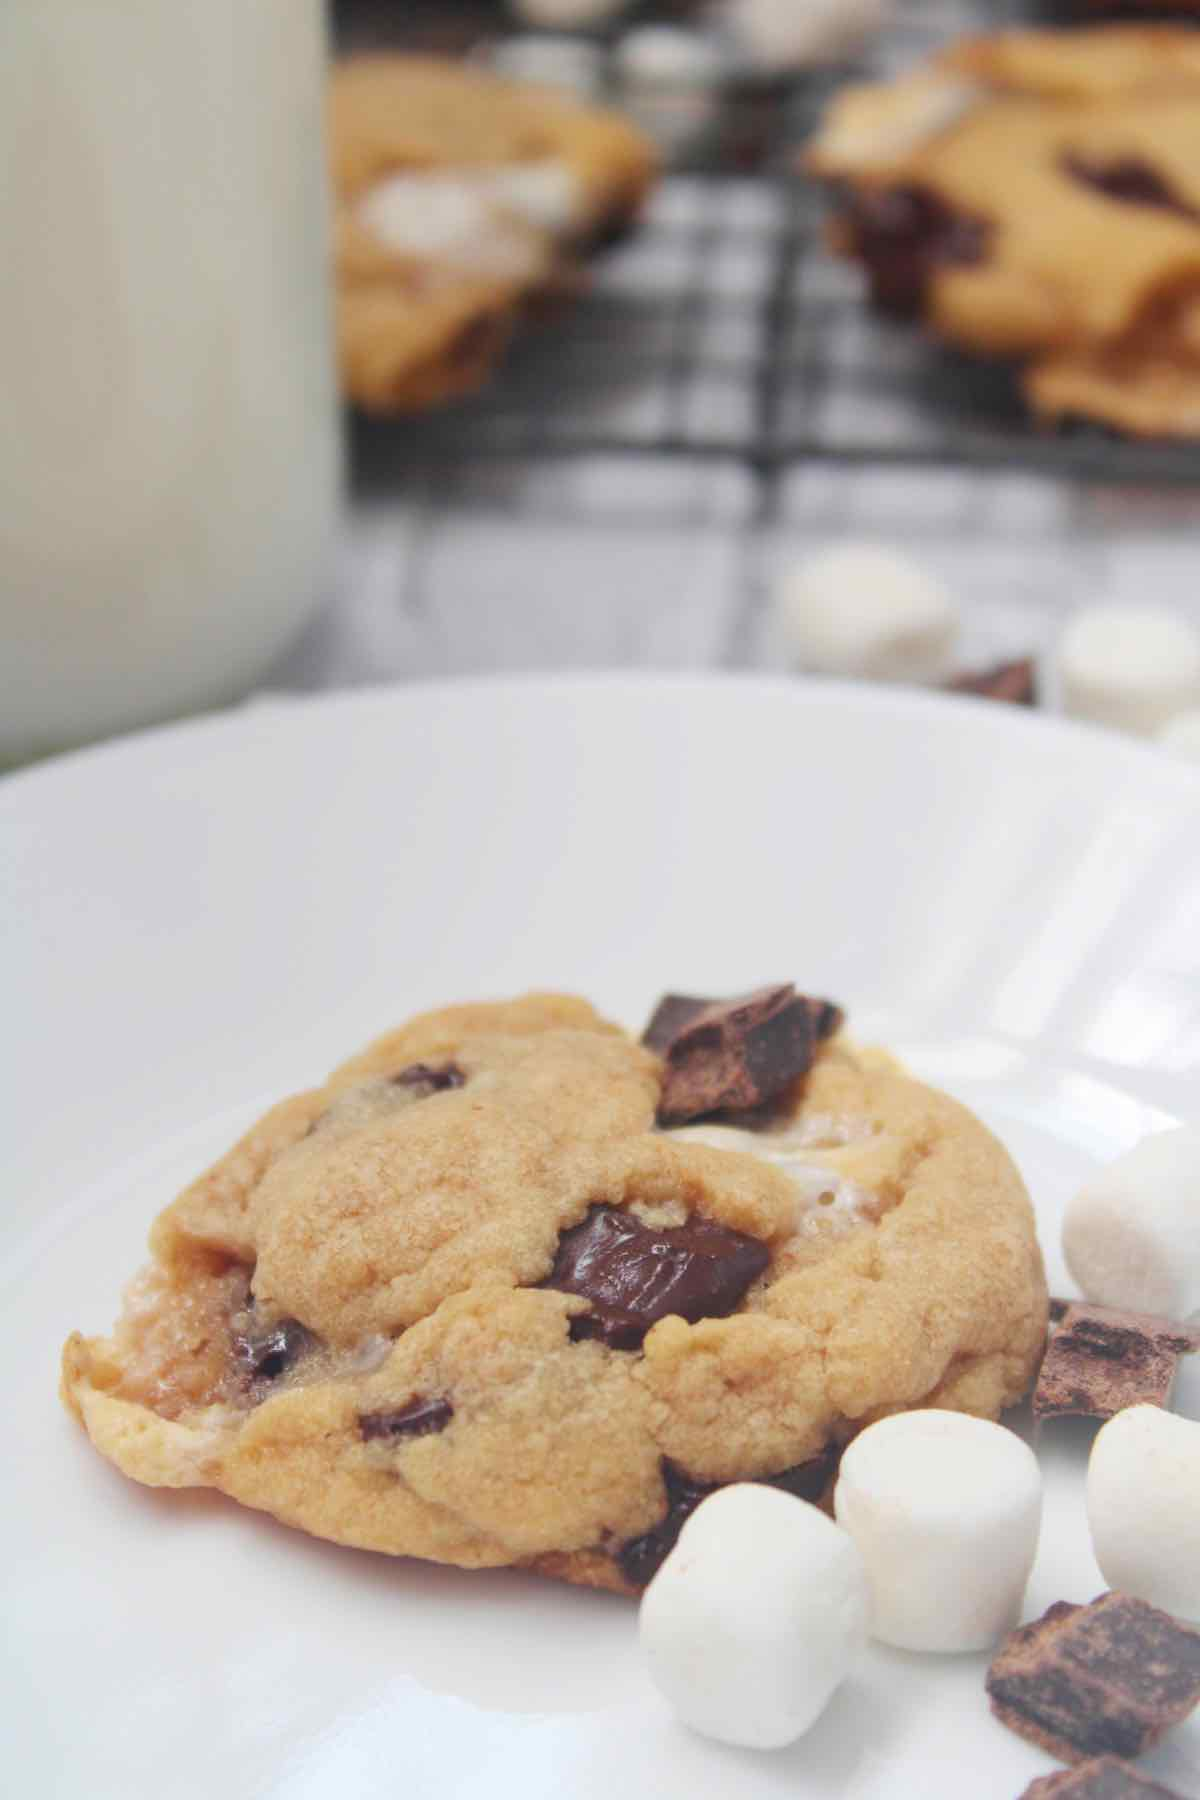 Delicious Baked Cookies